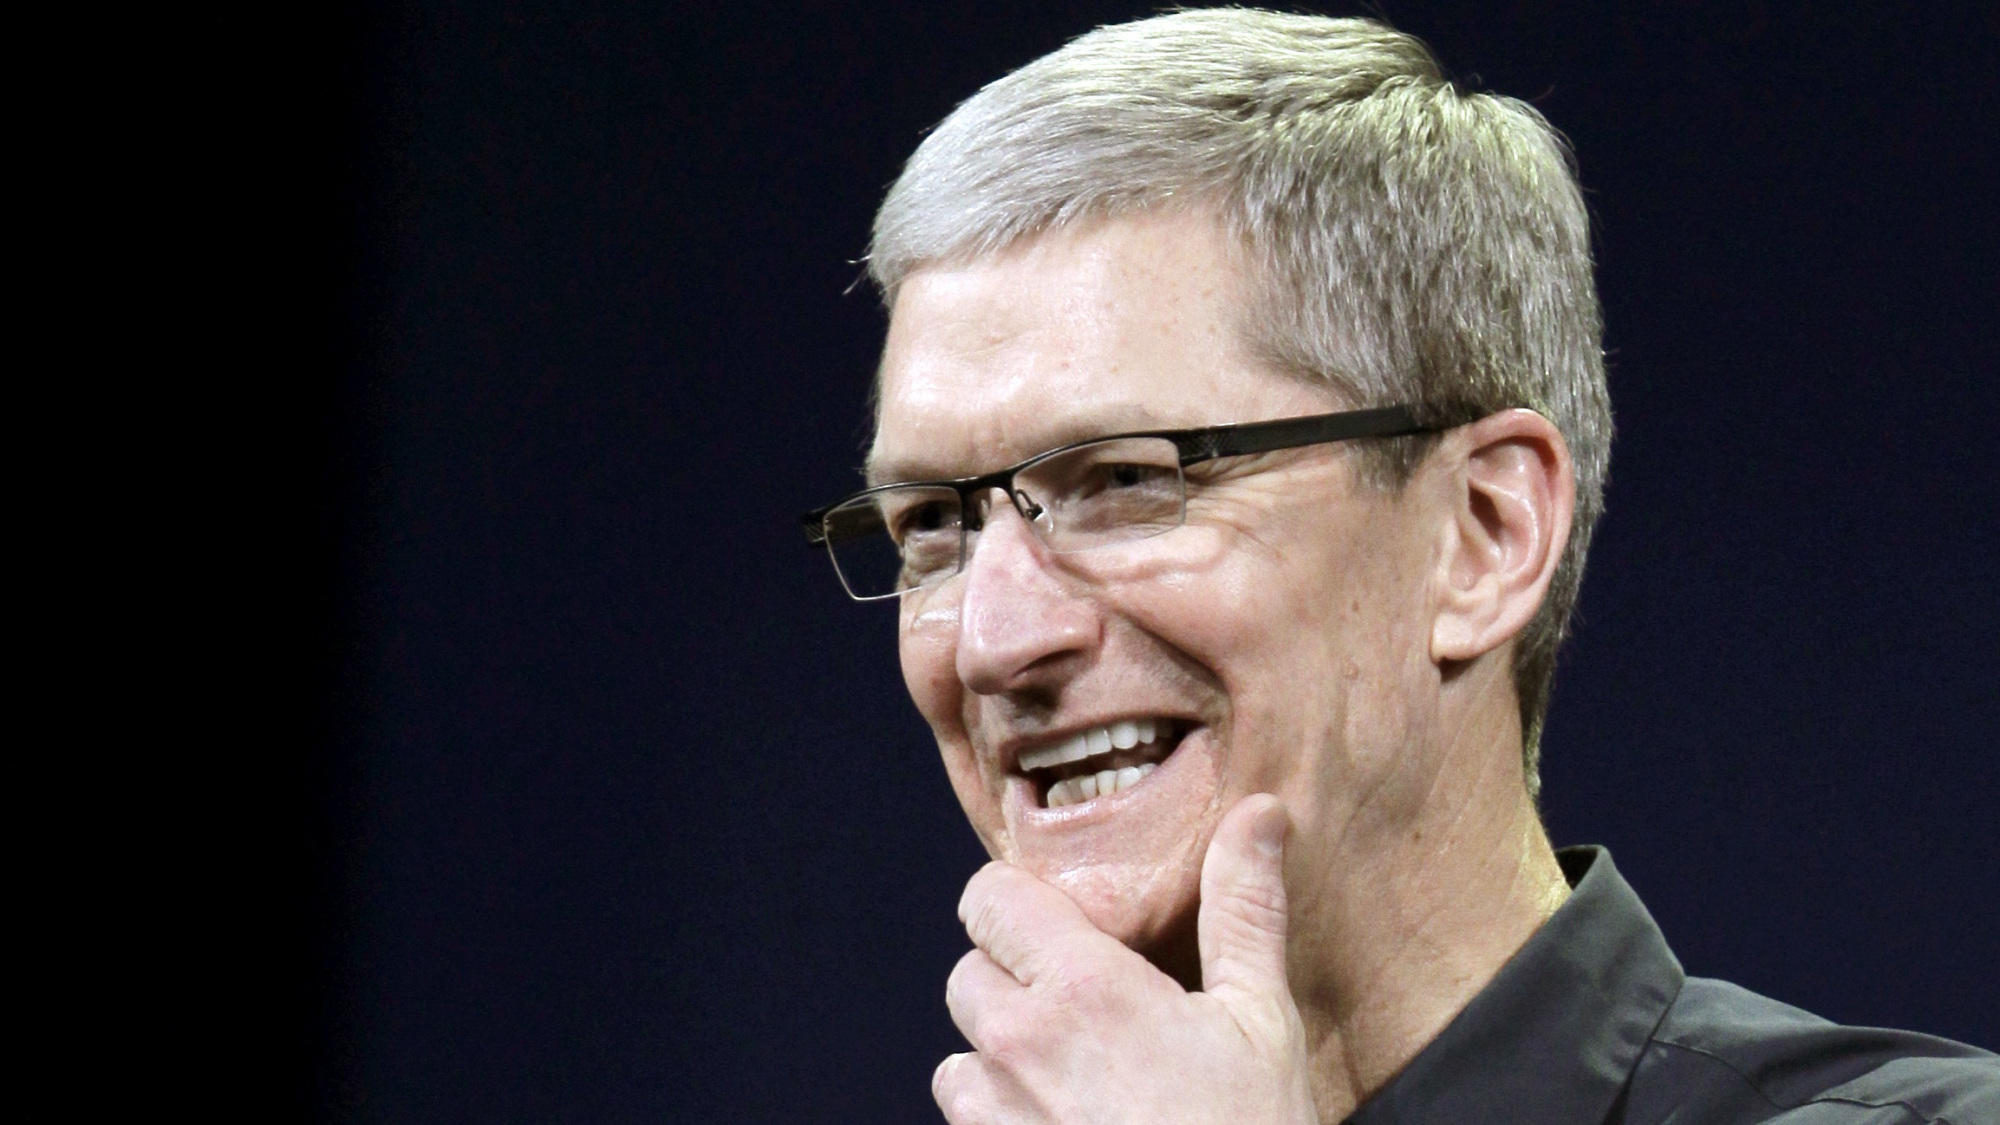 Tim Cook is named 'Person of the Year' by The Financial Times